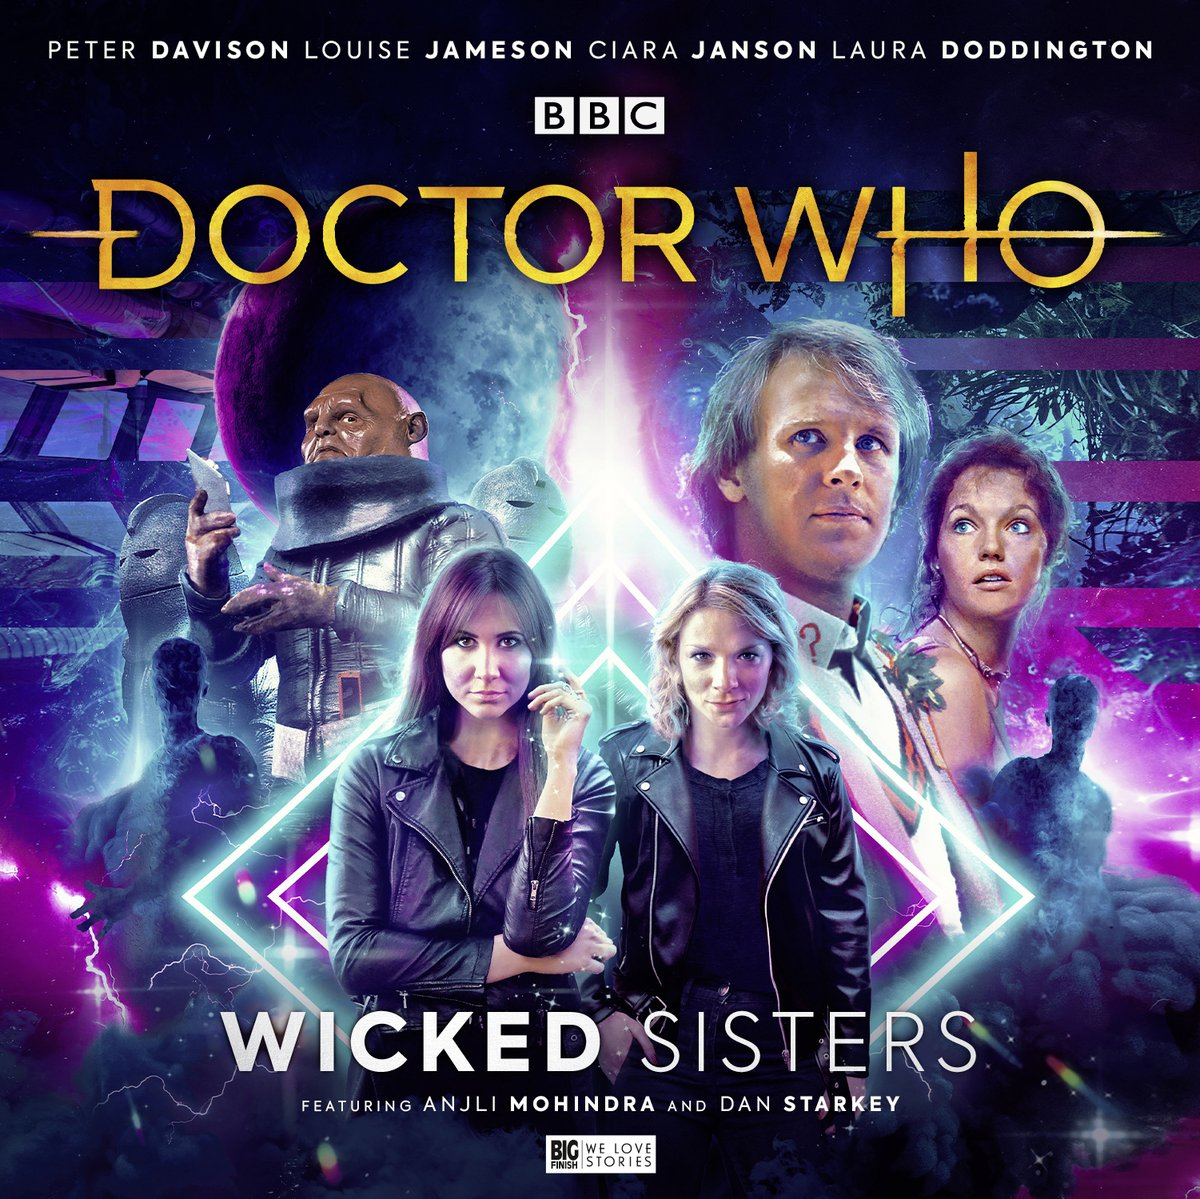 ICYMI! Something wicked this way comes... Pre-order #DoctorWho: Wicked Sisters here: https://t.co/Q5Cs2BhNPN https://t.co/wkkEnv9xyT